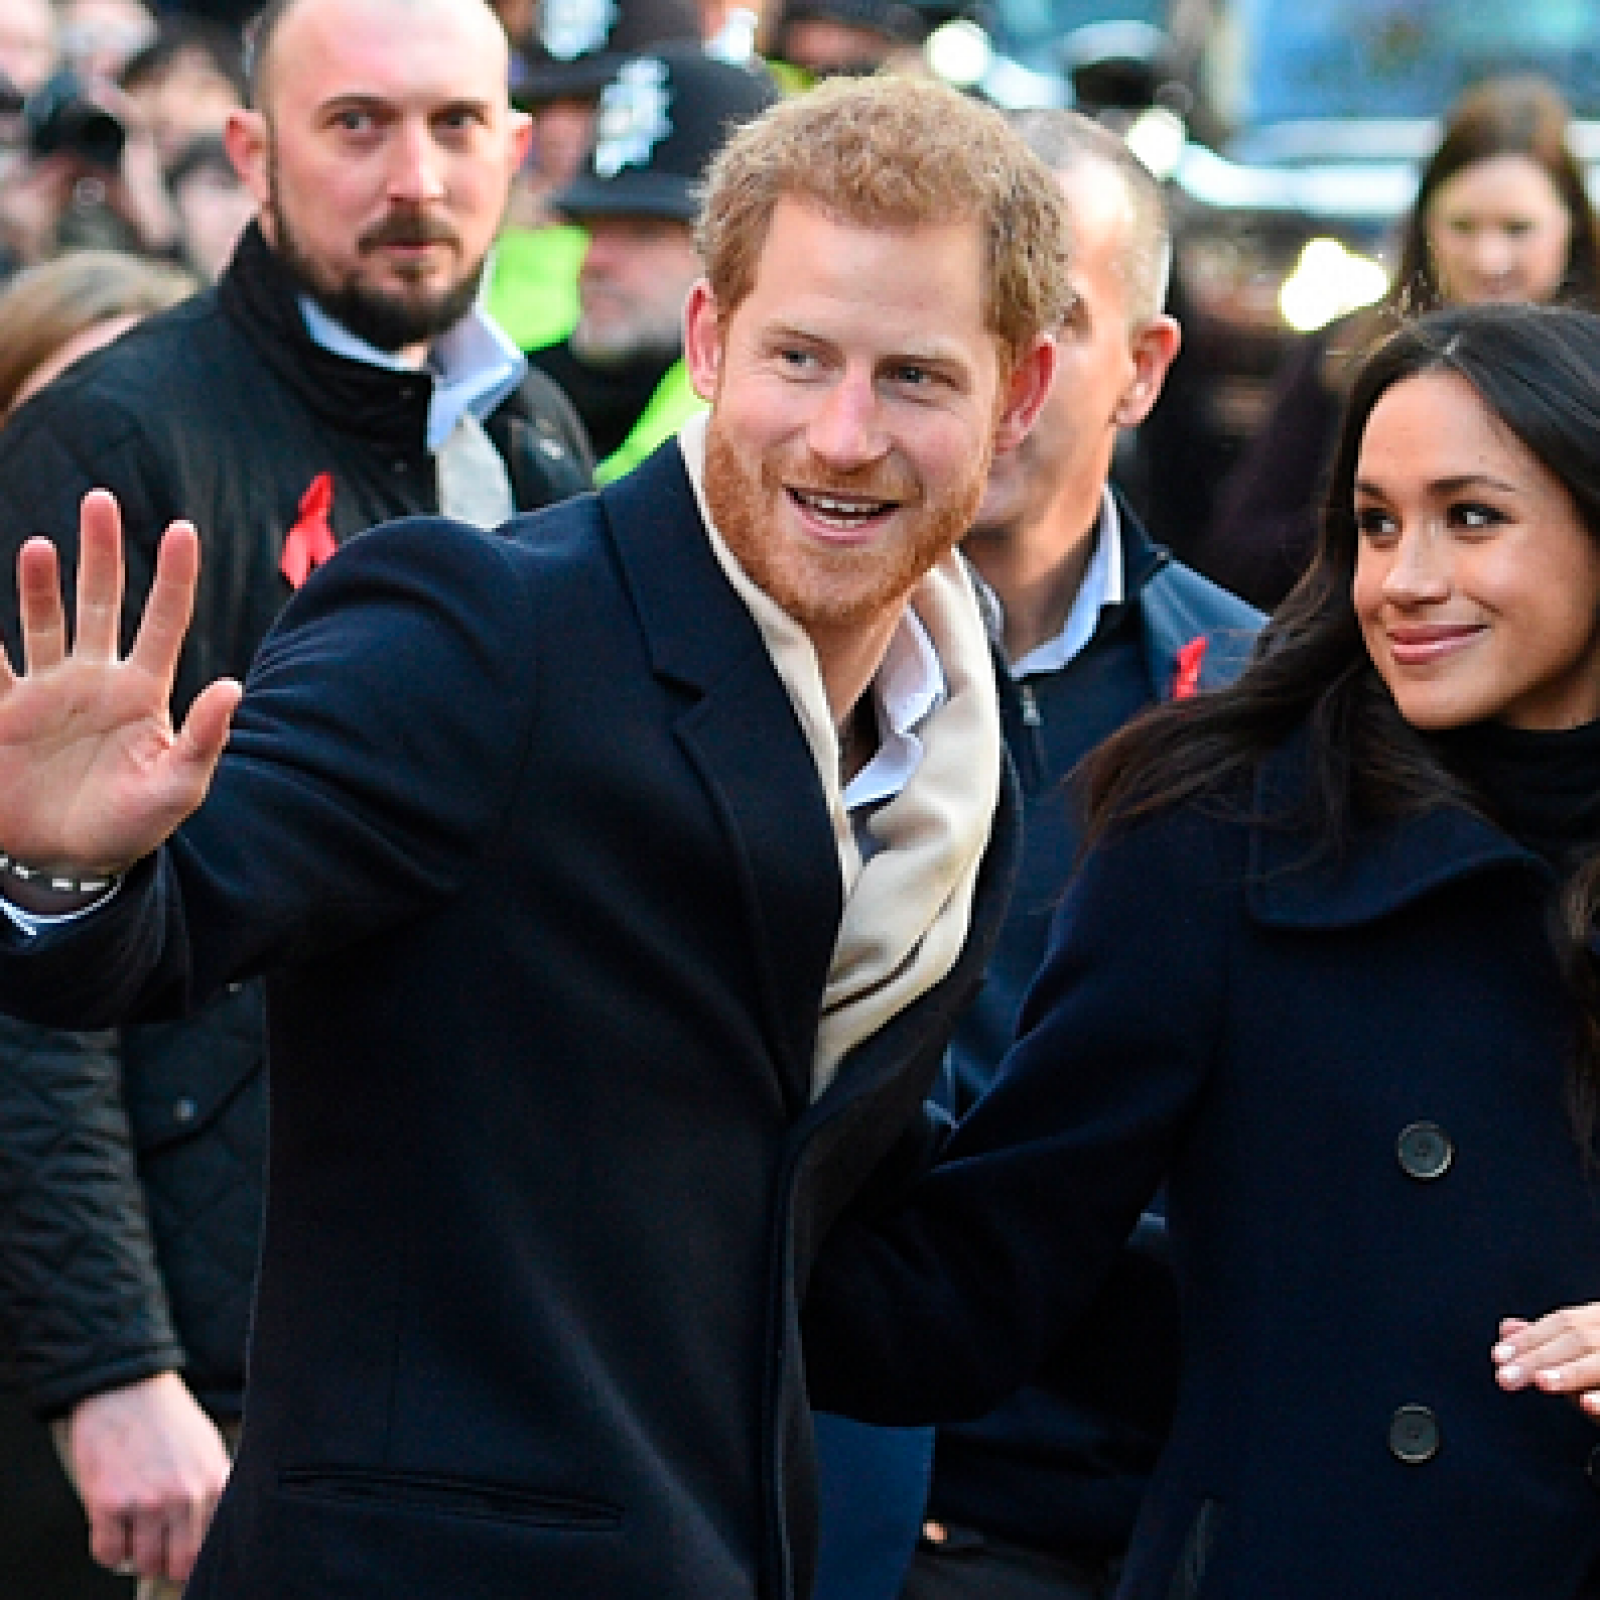 Royal Wedding Time In Us.Royal Wedding Live Stream In U S How To Watch Time Channel And More